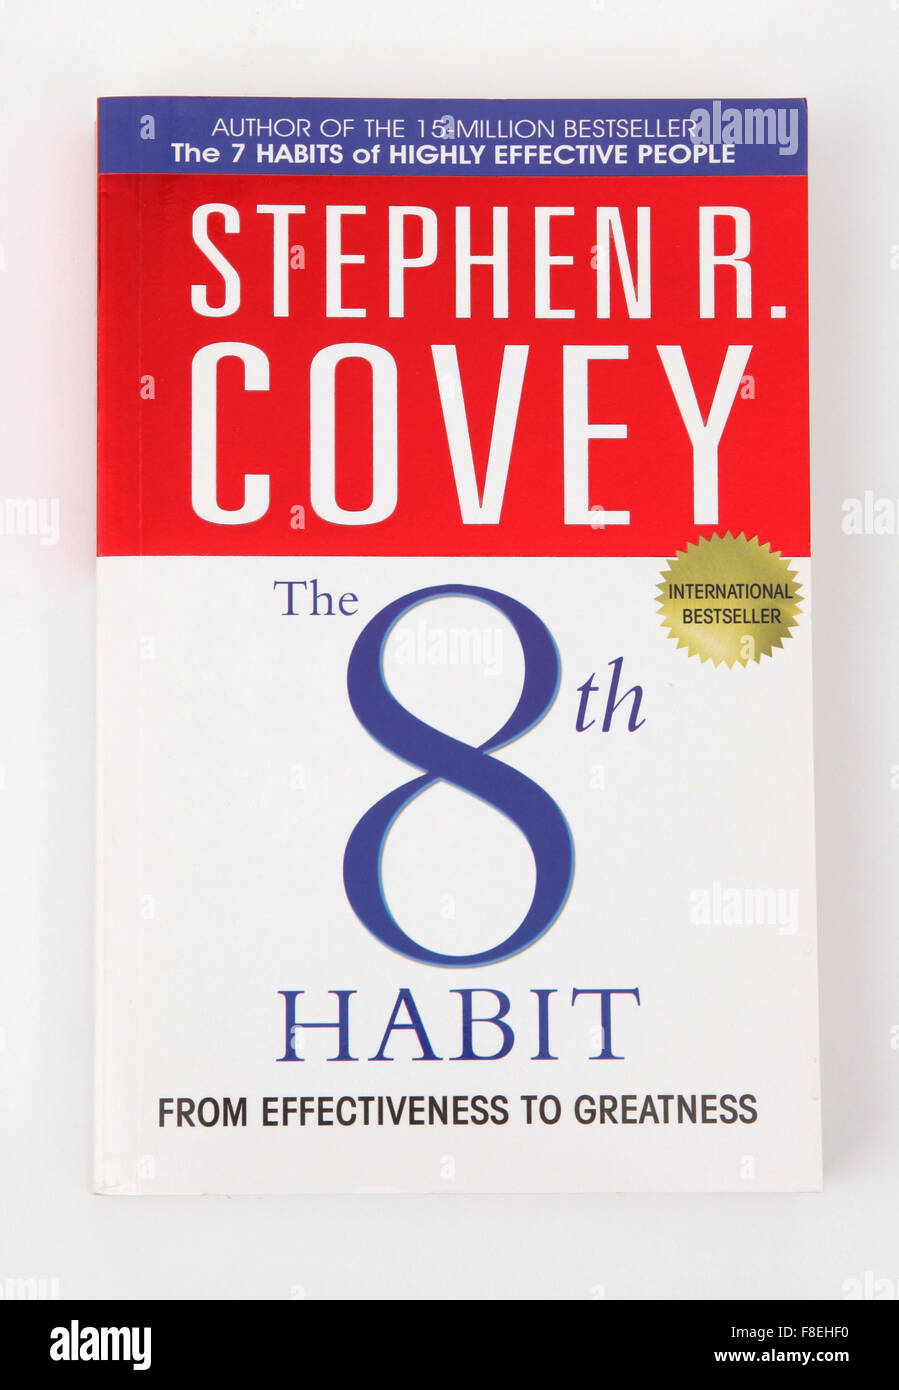 The book - The 8th Habit From Effectiveness to Greatness by Stephen Covey. - Stock Image